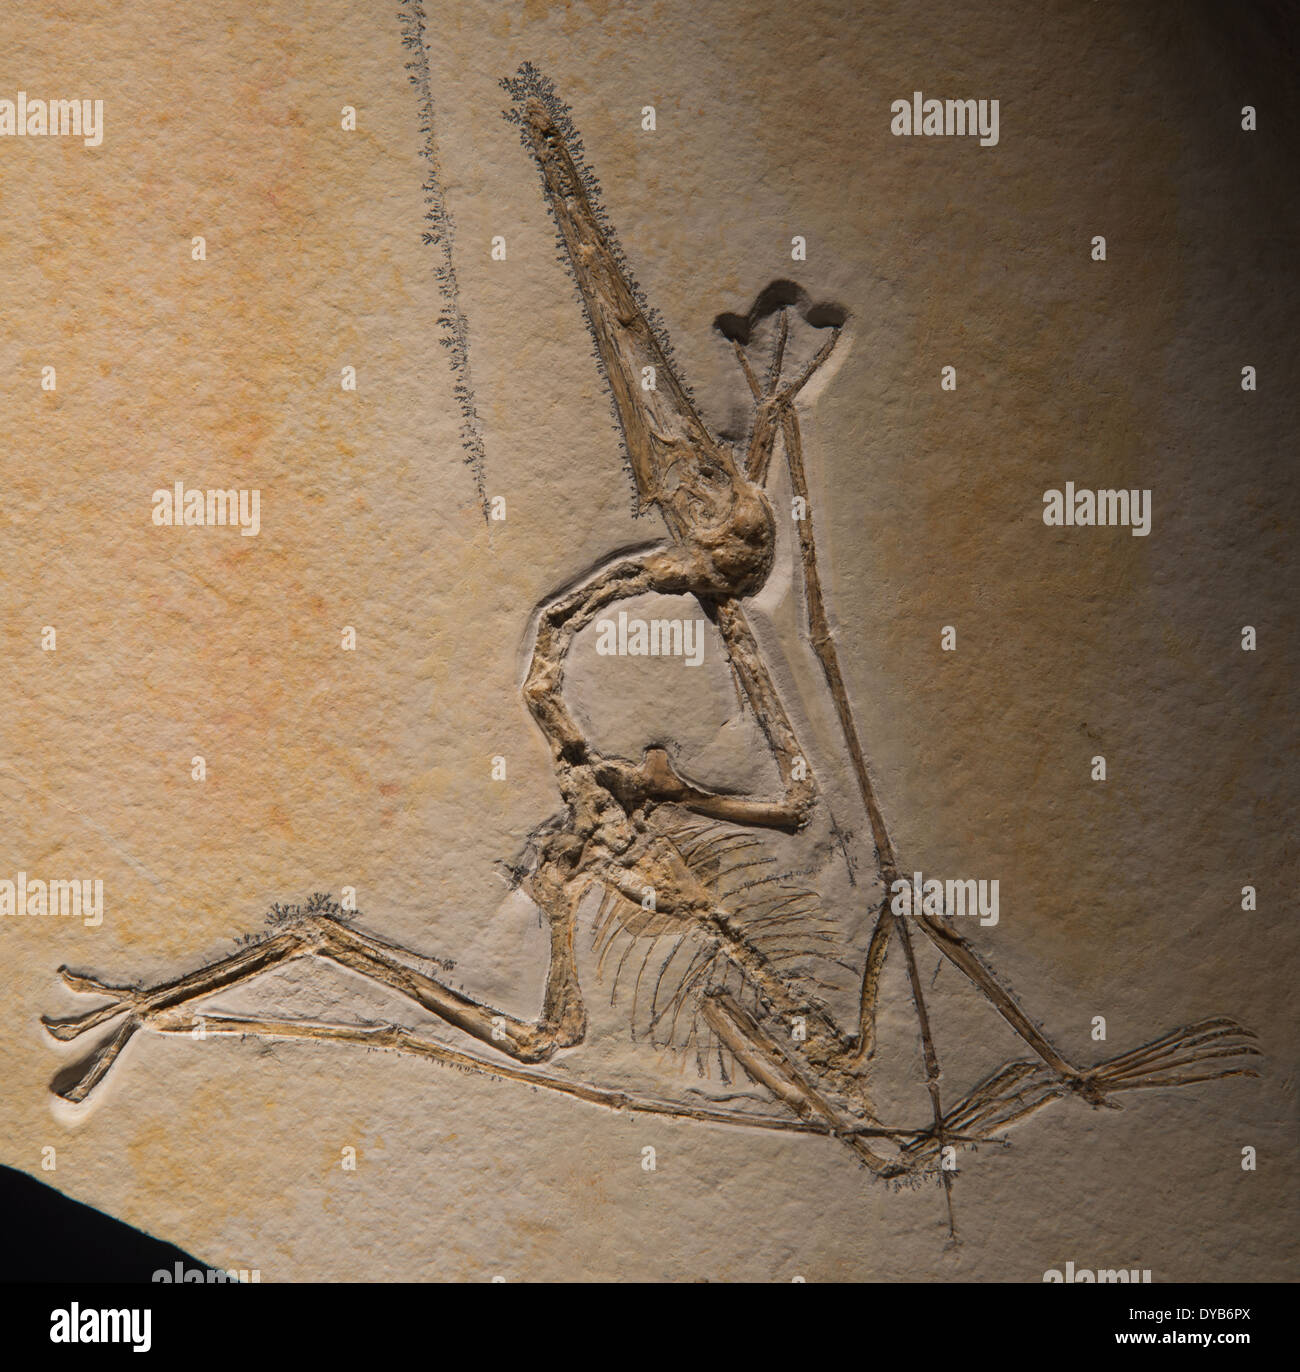 Fossil Pterodactyl (Pterodactylus sp.). Jurassic age. - Stock Image